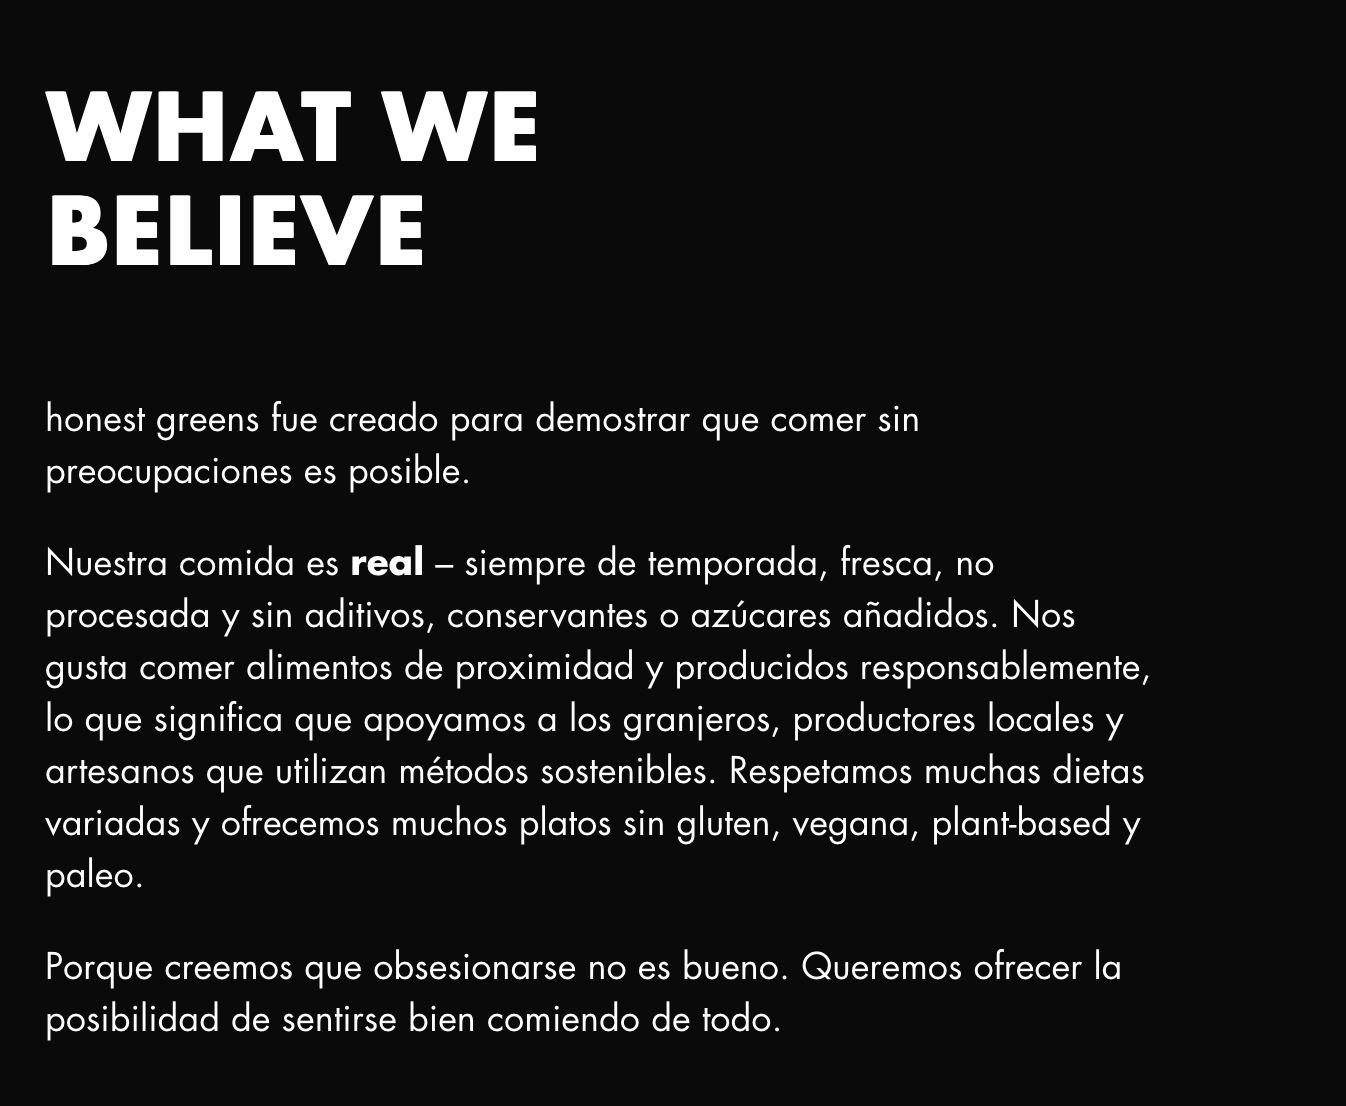 valores honest greens